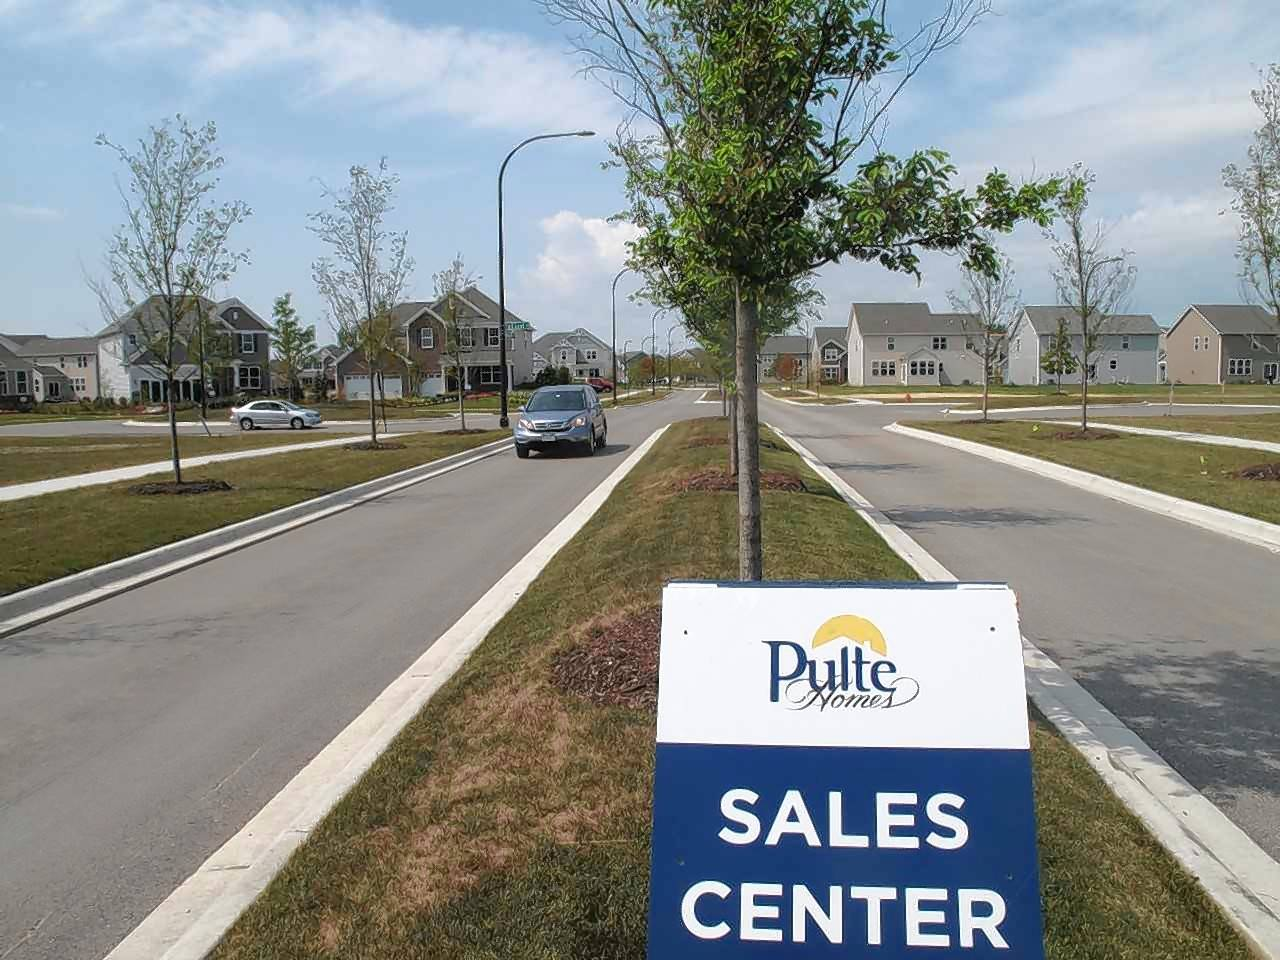 The Atwater subdivision on Naperville's northwest side is one area among 58 census blocks that the city plans to recount during a special census it is likely to pursue next year. The city estimates a new count could increase its population by roughly 4,500.